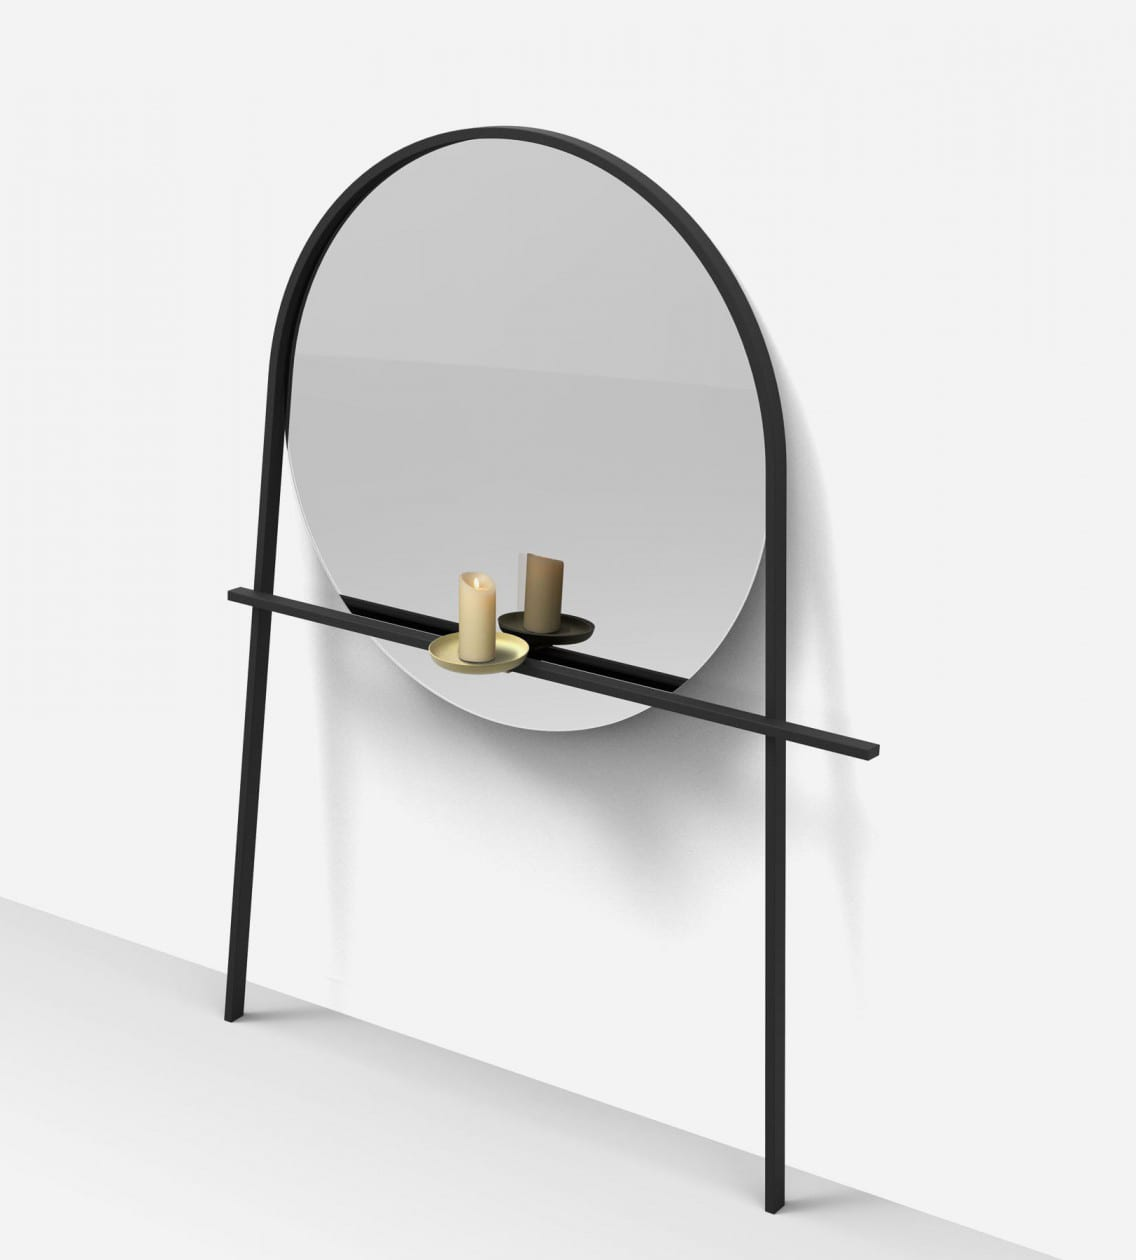 Geoffrey Mirror by Alain Gilles for Ligne Roset at Maison & Objet 2018 | Yellowtrace